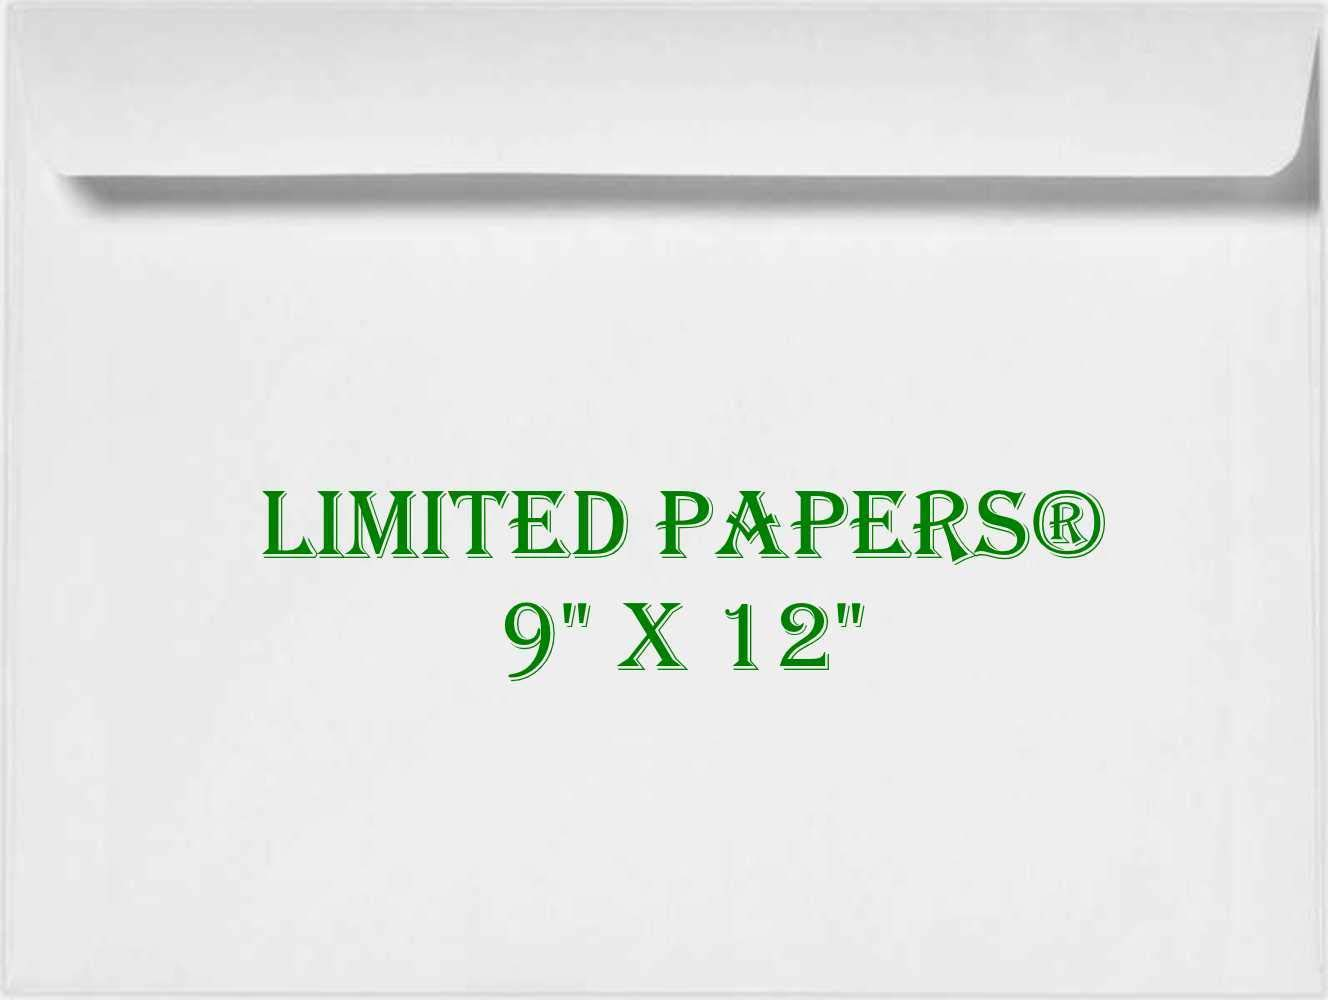 1000 Jumbo TM Limited Papers 28# White - Open Side 9 x 12 9 x 12 Booklet Envelope - Large Envelope Series